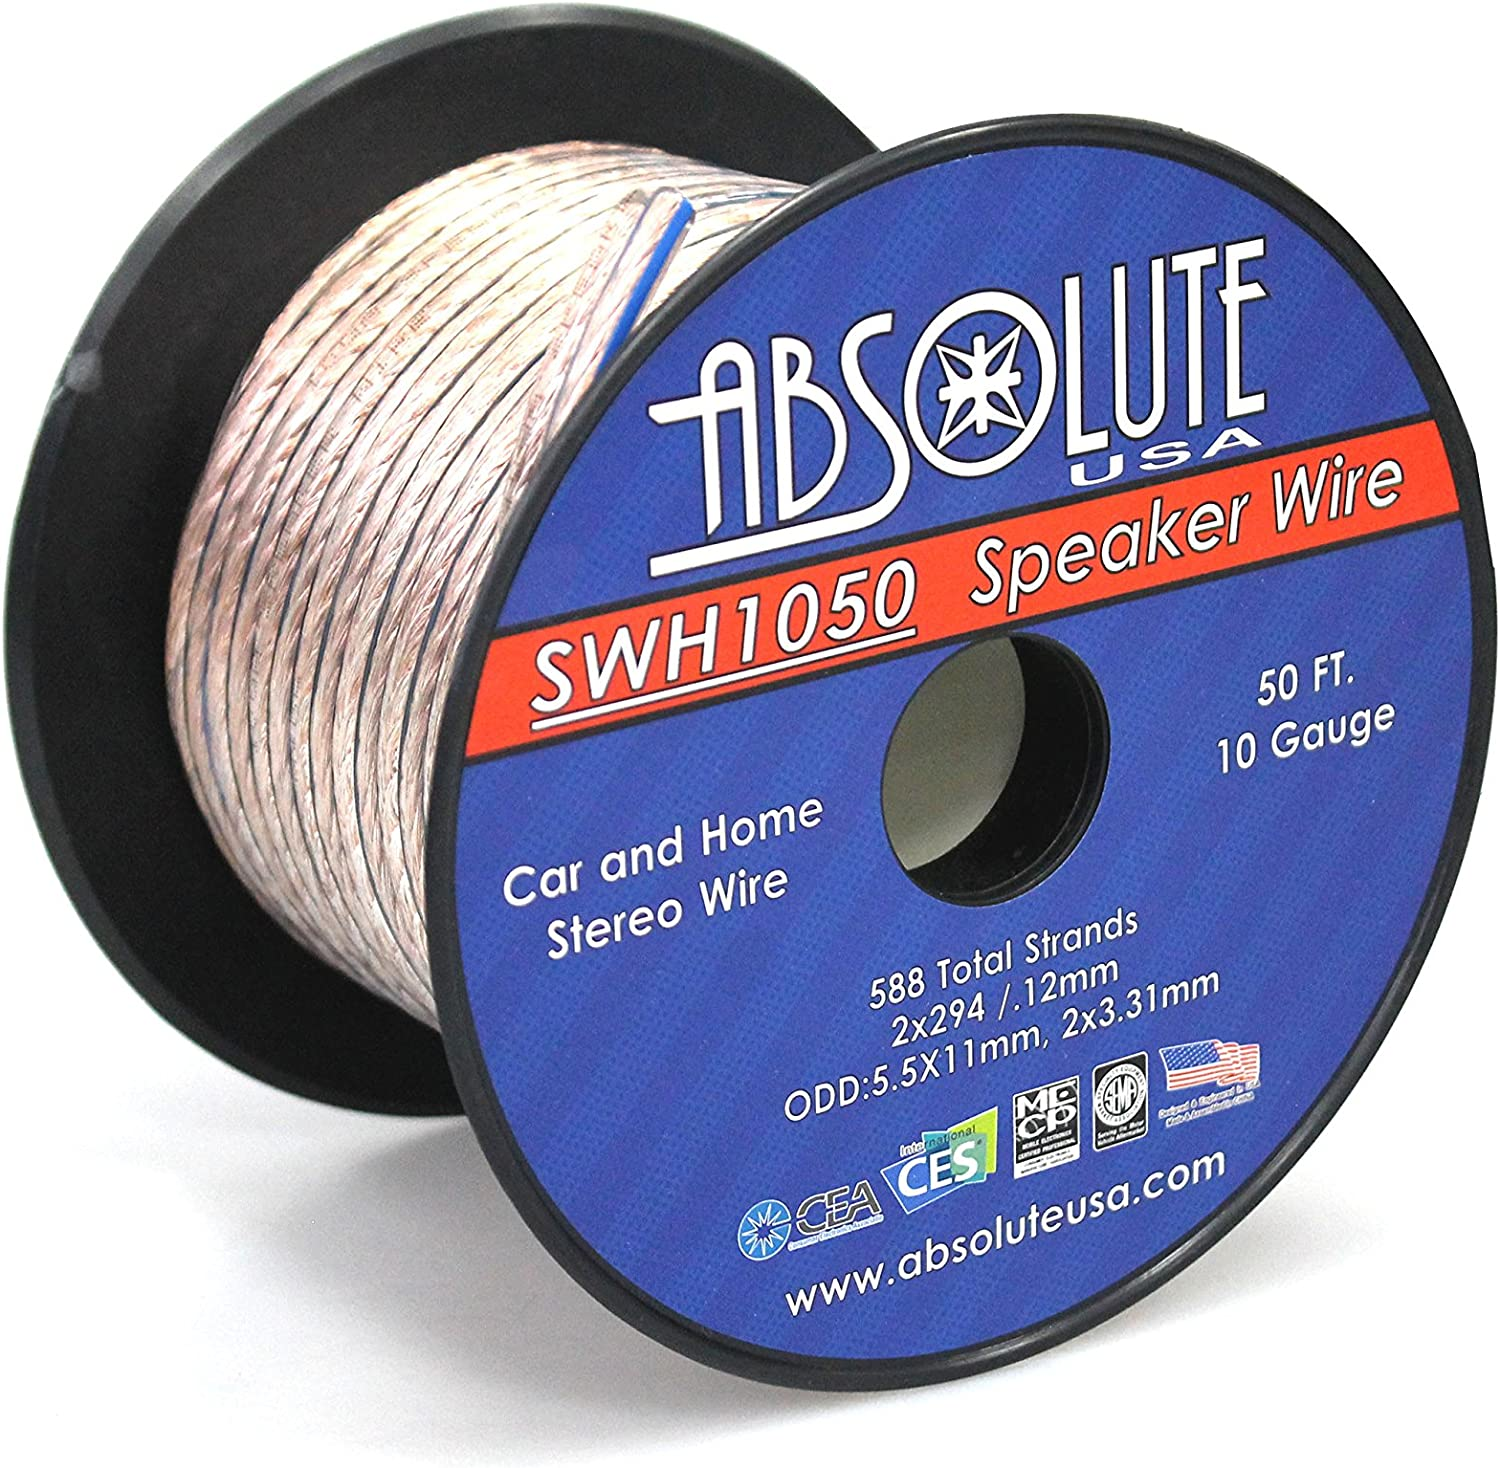 Absolute USA SWH1050 10 Gauge Car Home Audio Speaker Wire Cable Spool 50